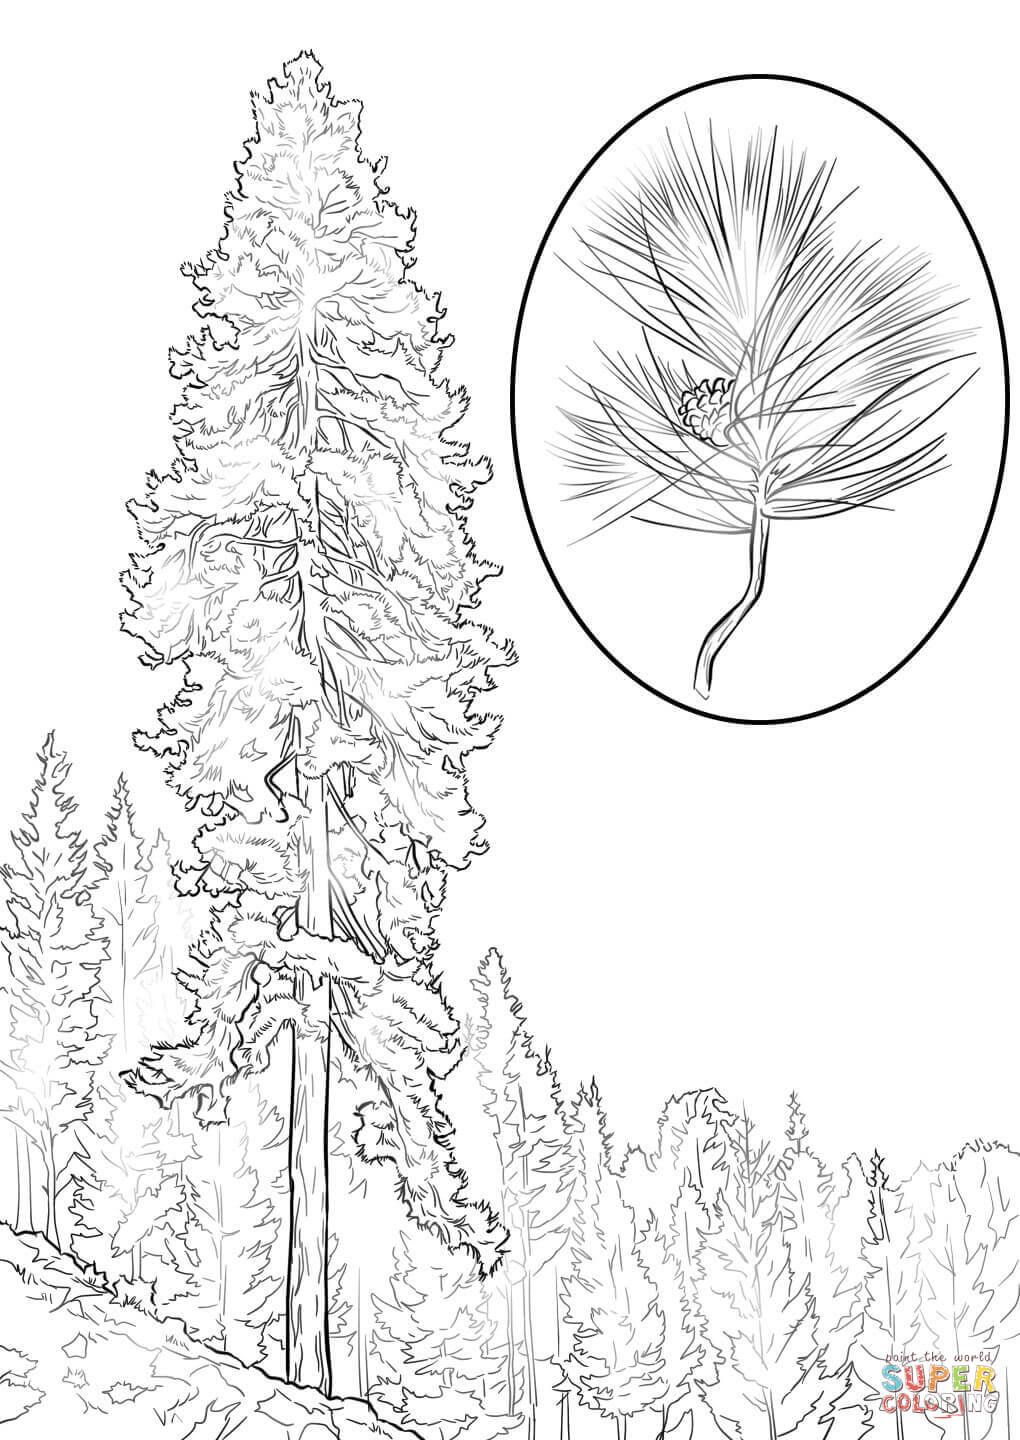 Ponderosa Pine Coloring Page From Pine Trees Category Select From 27522 Printable Crafts Of Cartoon Tree Coloring Page Bird Coloring Pages Flag Coloring Pages